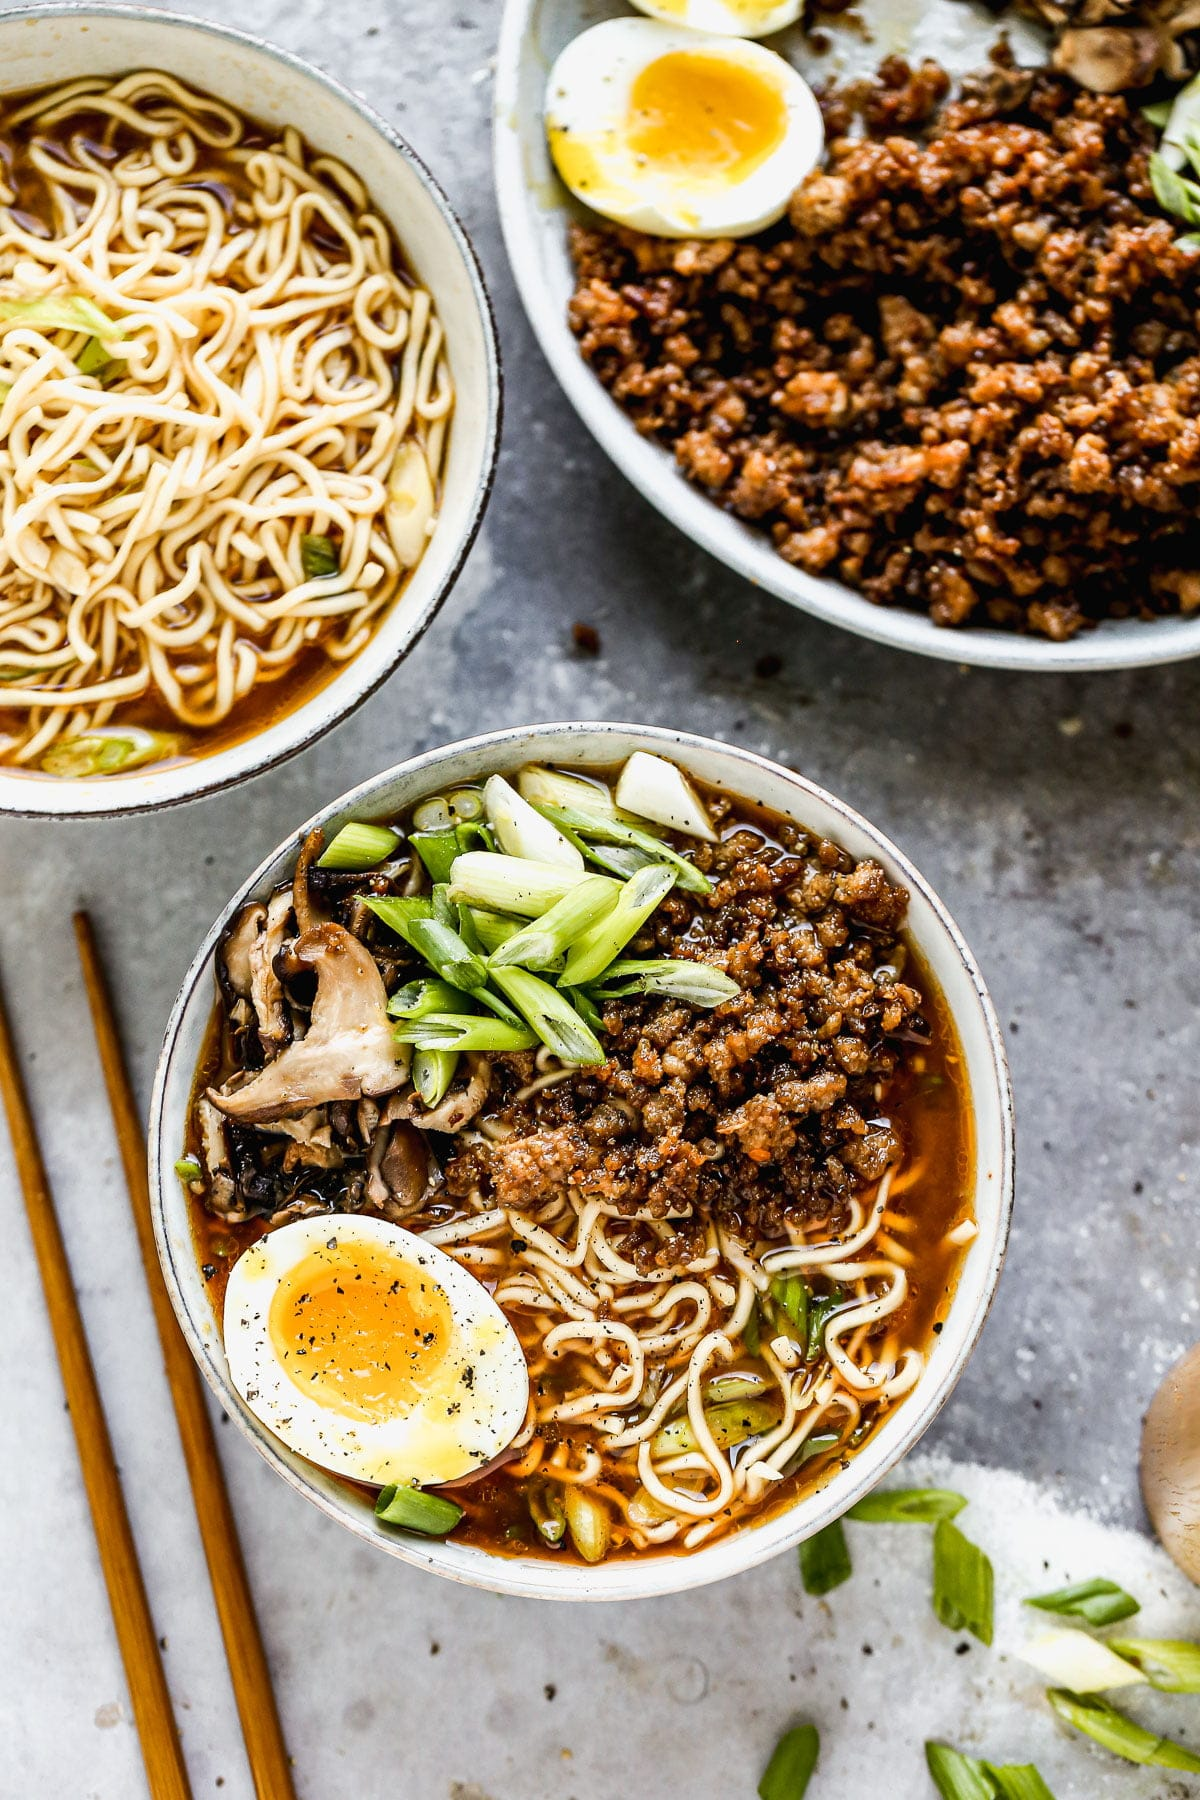 Let's eat ramen that looks like it came from the trendiest of restaurants, tastes like it was cooked all day long, and makes you feel as if you just received the warmest, coziest hug on the planet. But let's make it in 25 minutes, at home, and with just a little bit of help from @Maruchan_Inc. These semi-homemade Pork Miso Ramen Bowls are packed with a spicy miso broth, crispy hoisin pork, quick-pickled mushrooms, a jammy egg (of course), and chewy ramen noodles. They're highly addictive, perfect for busy days, and the only thing I want to eat from now until spring.